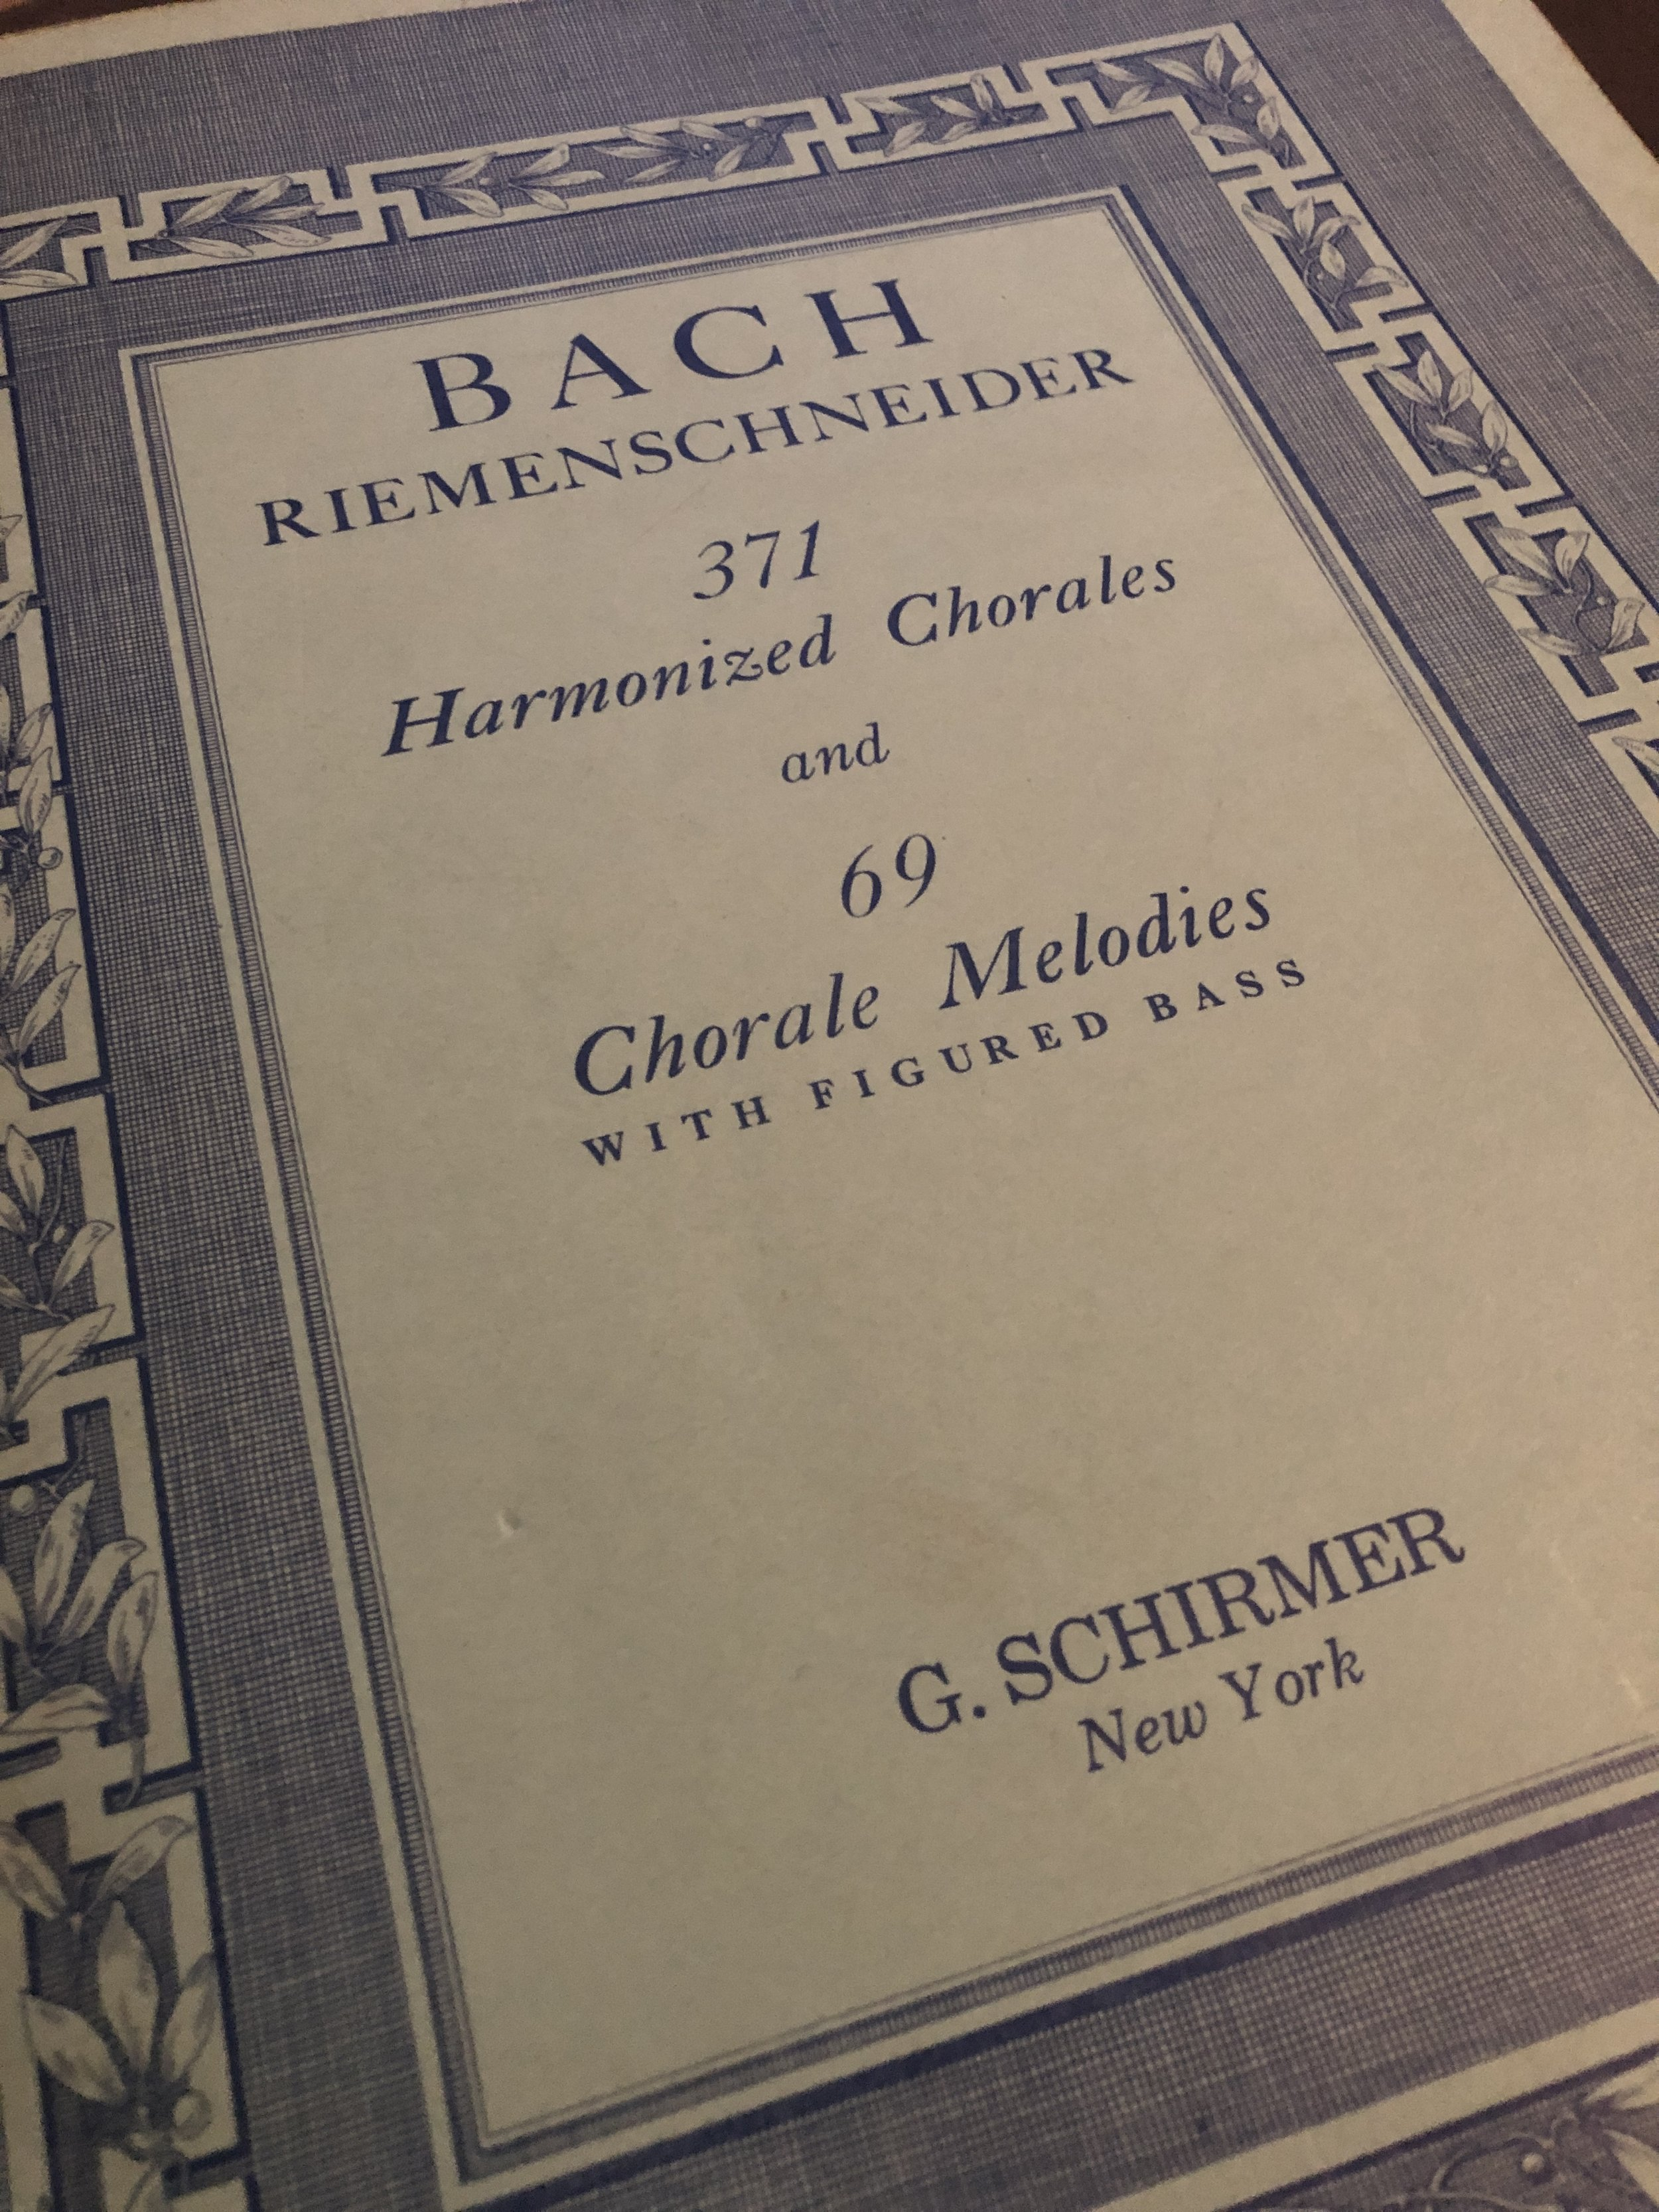 My copy of the Bach-Riemenschnieder, no house is complete without it